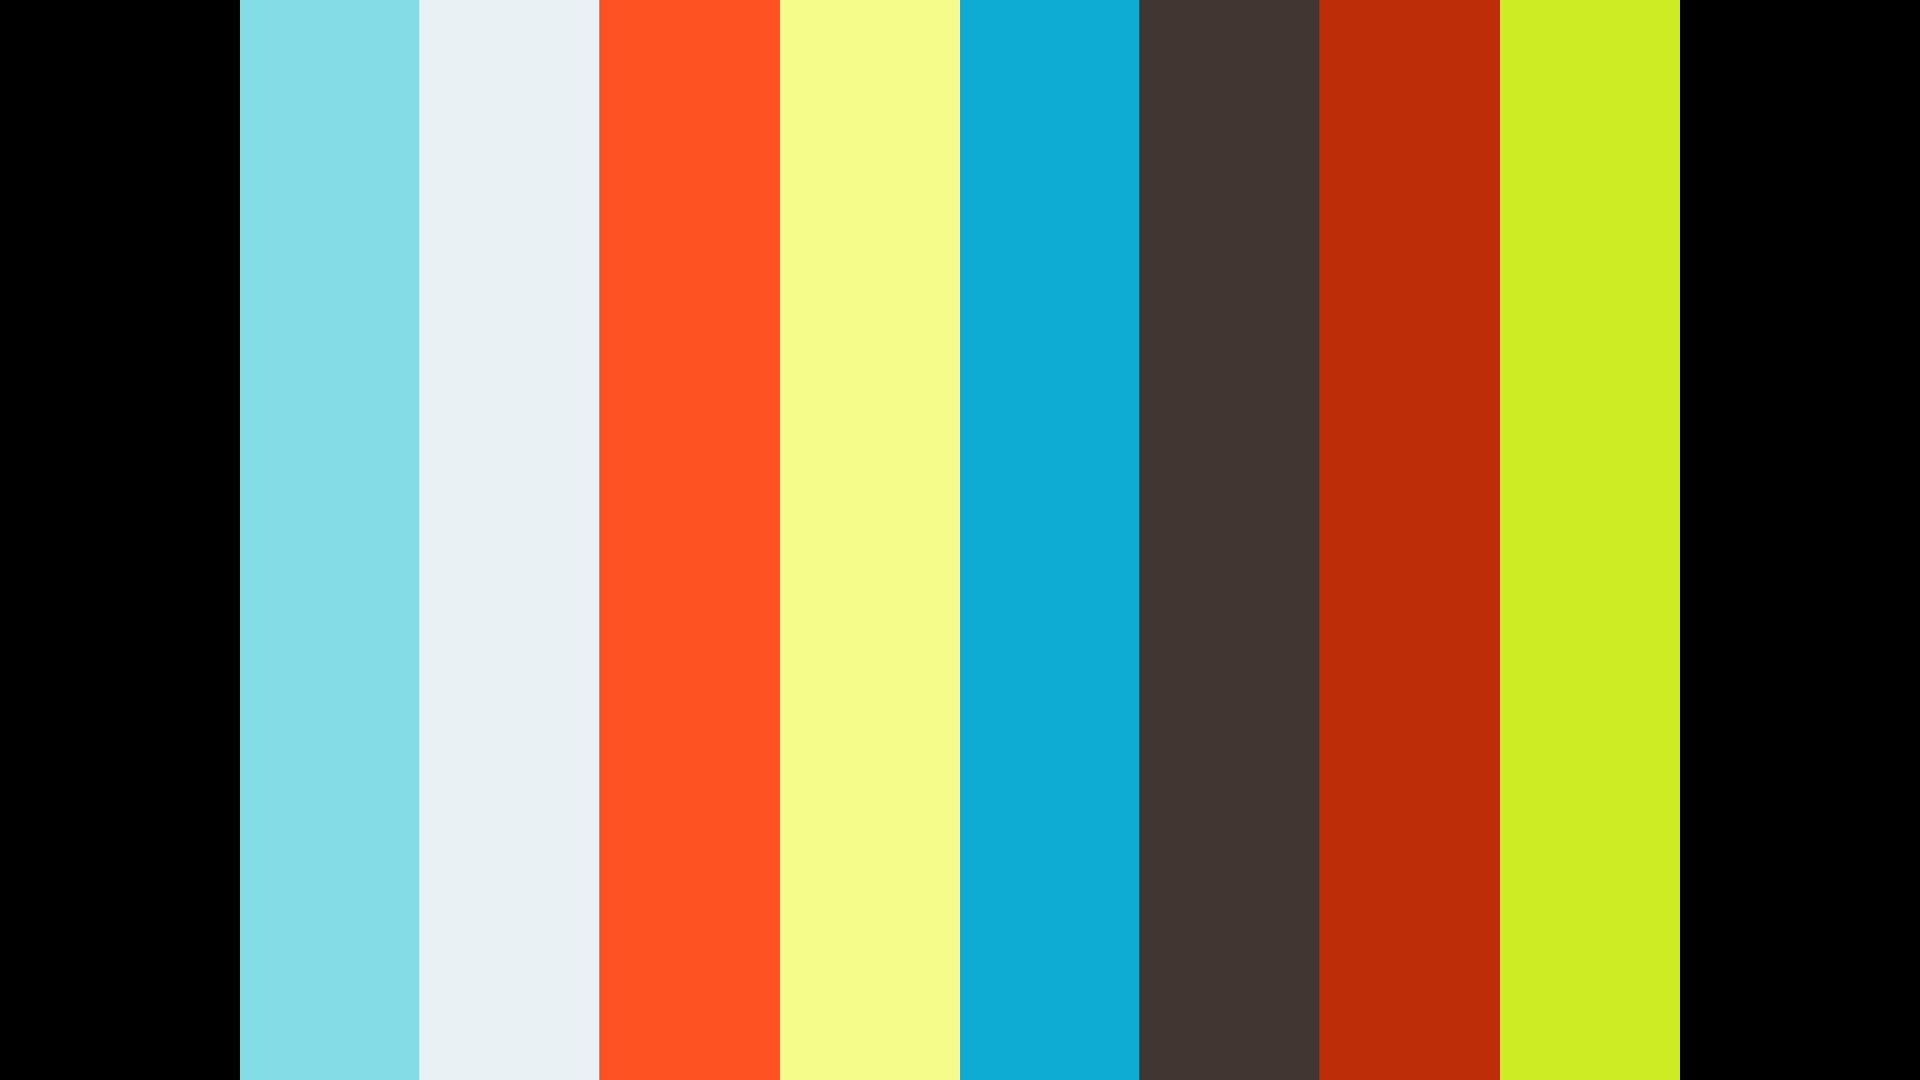 9 Months at CatFace Animation